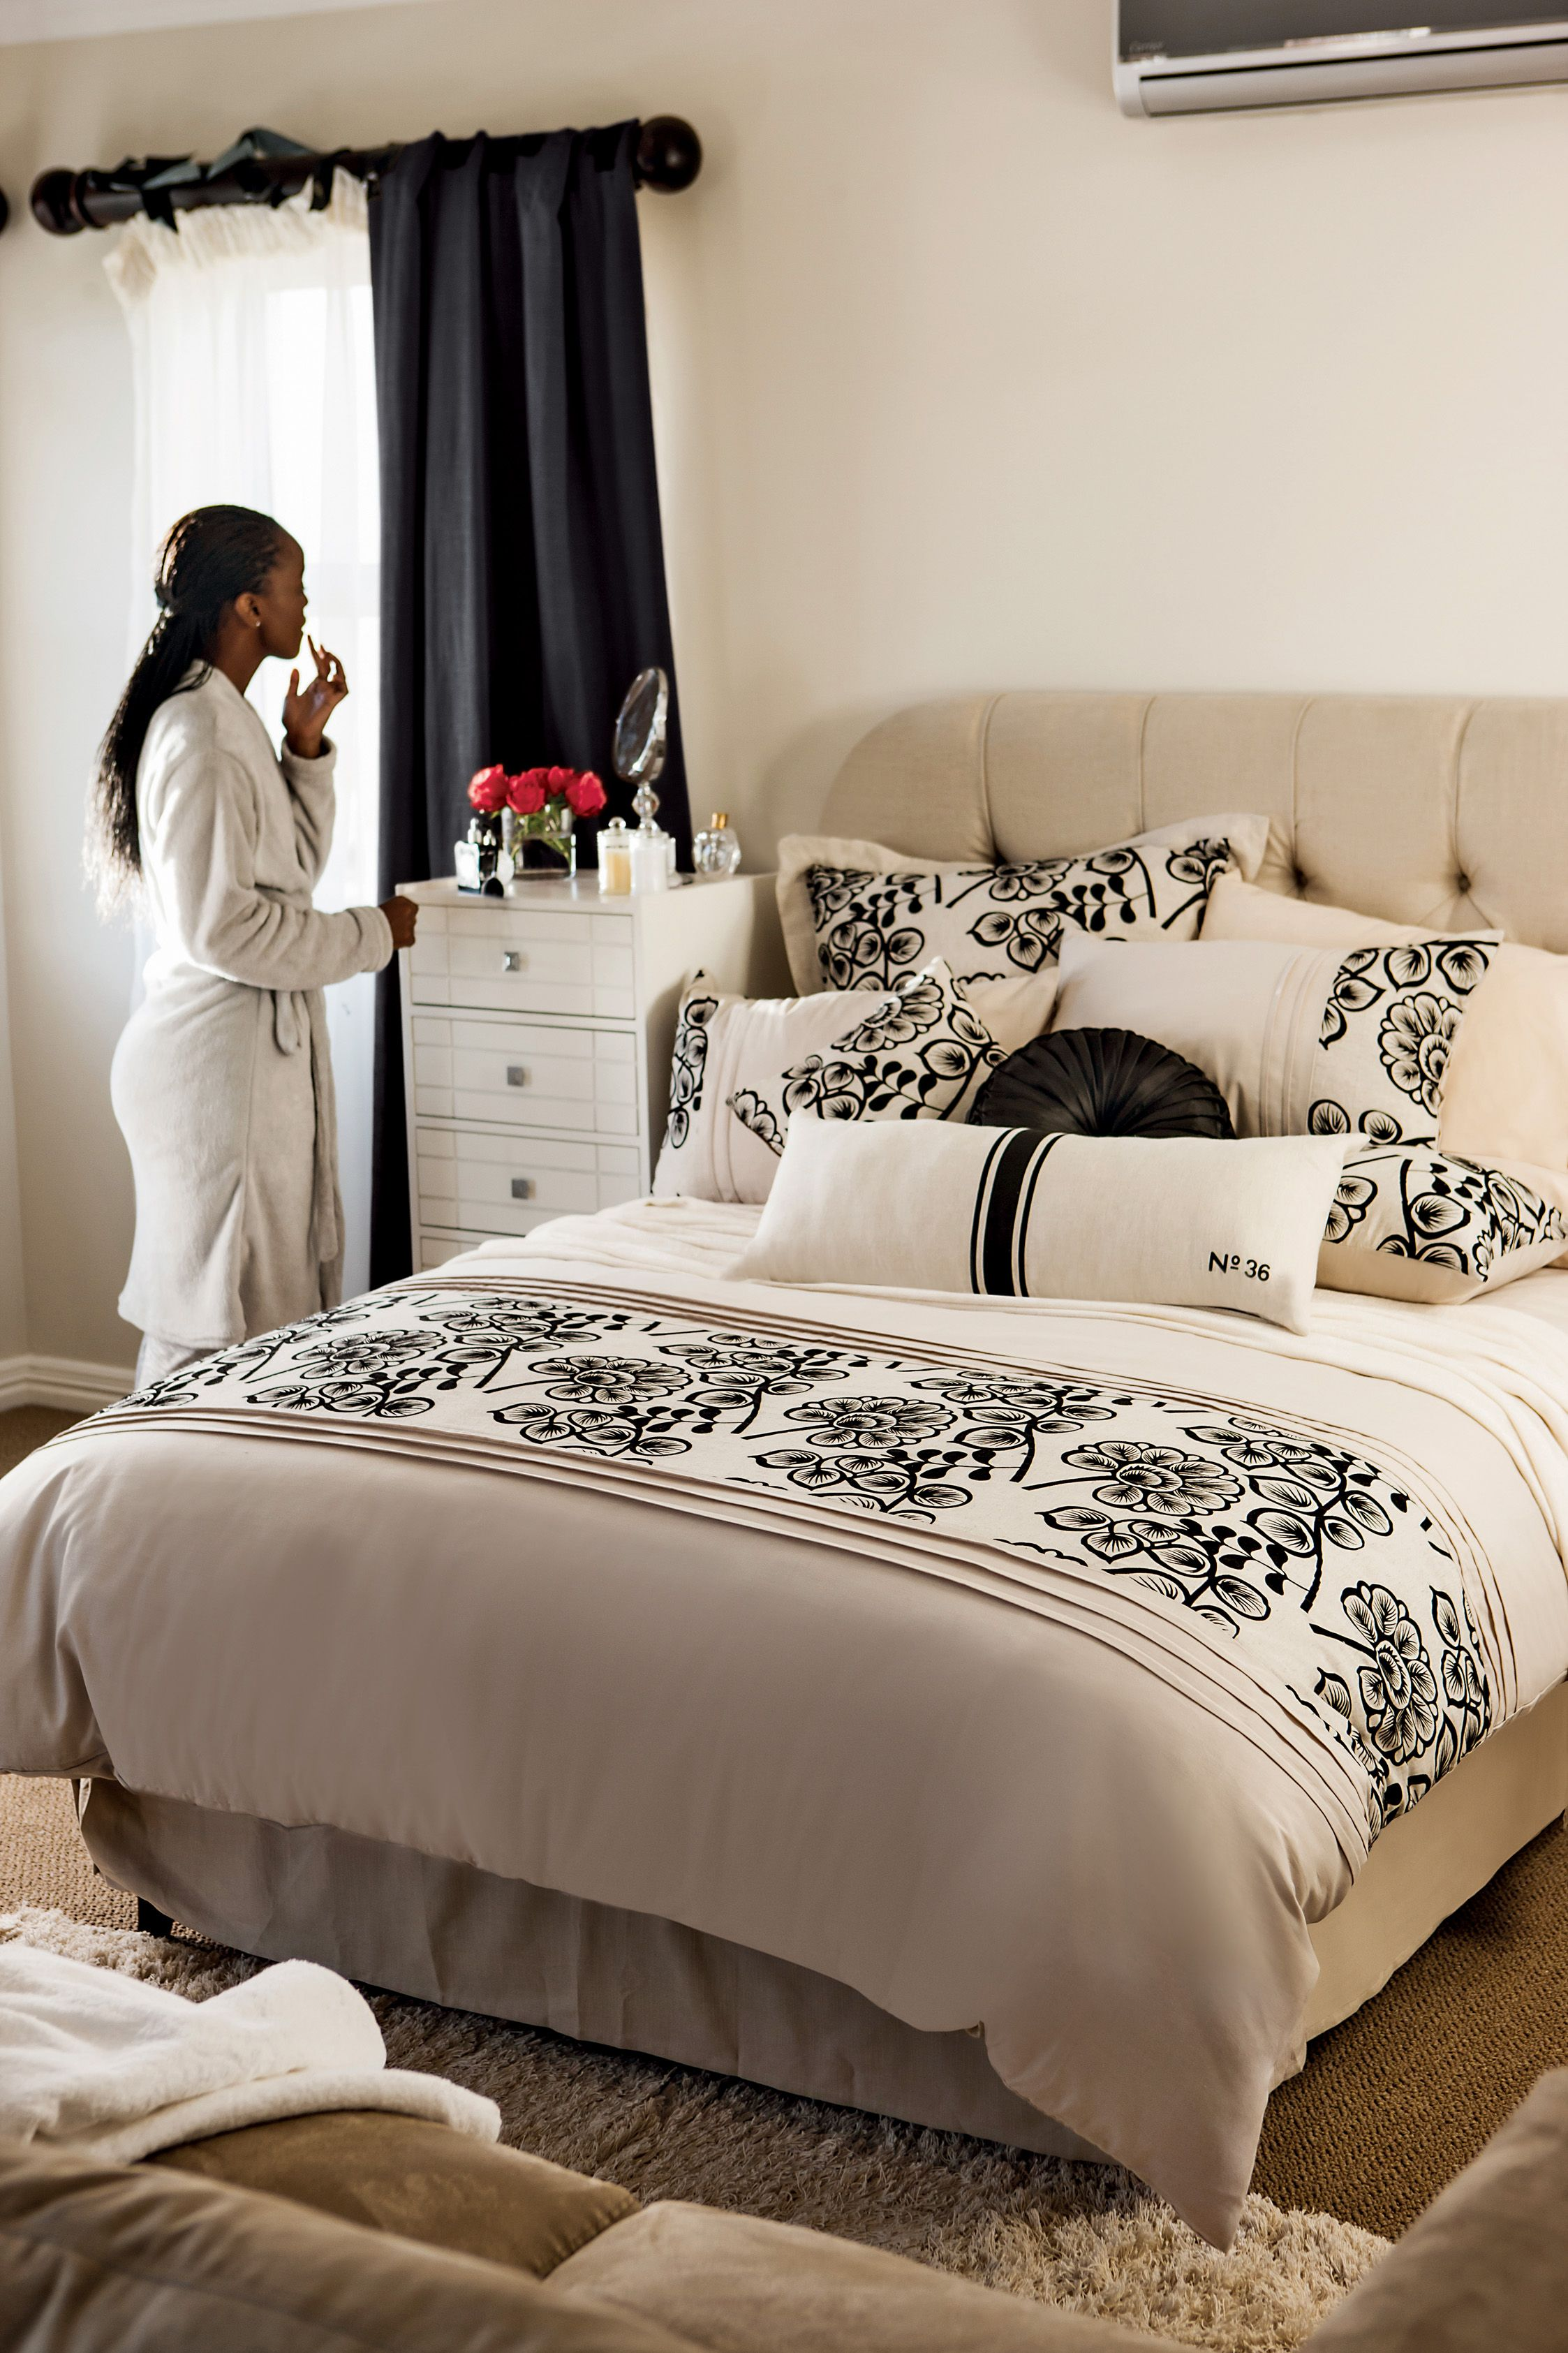 Mr Price Home Bedroom View Our Range At Www Mrpricehome